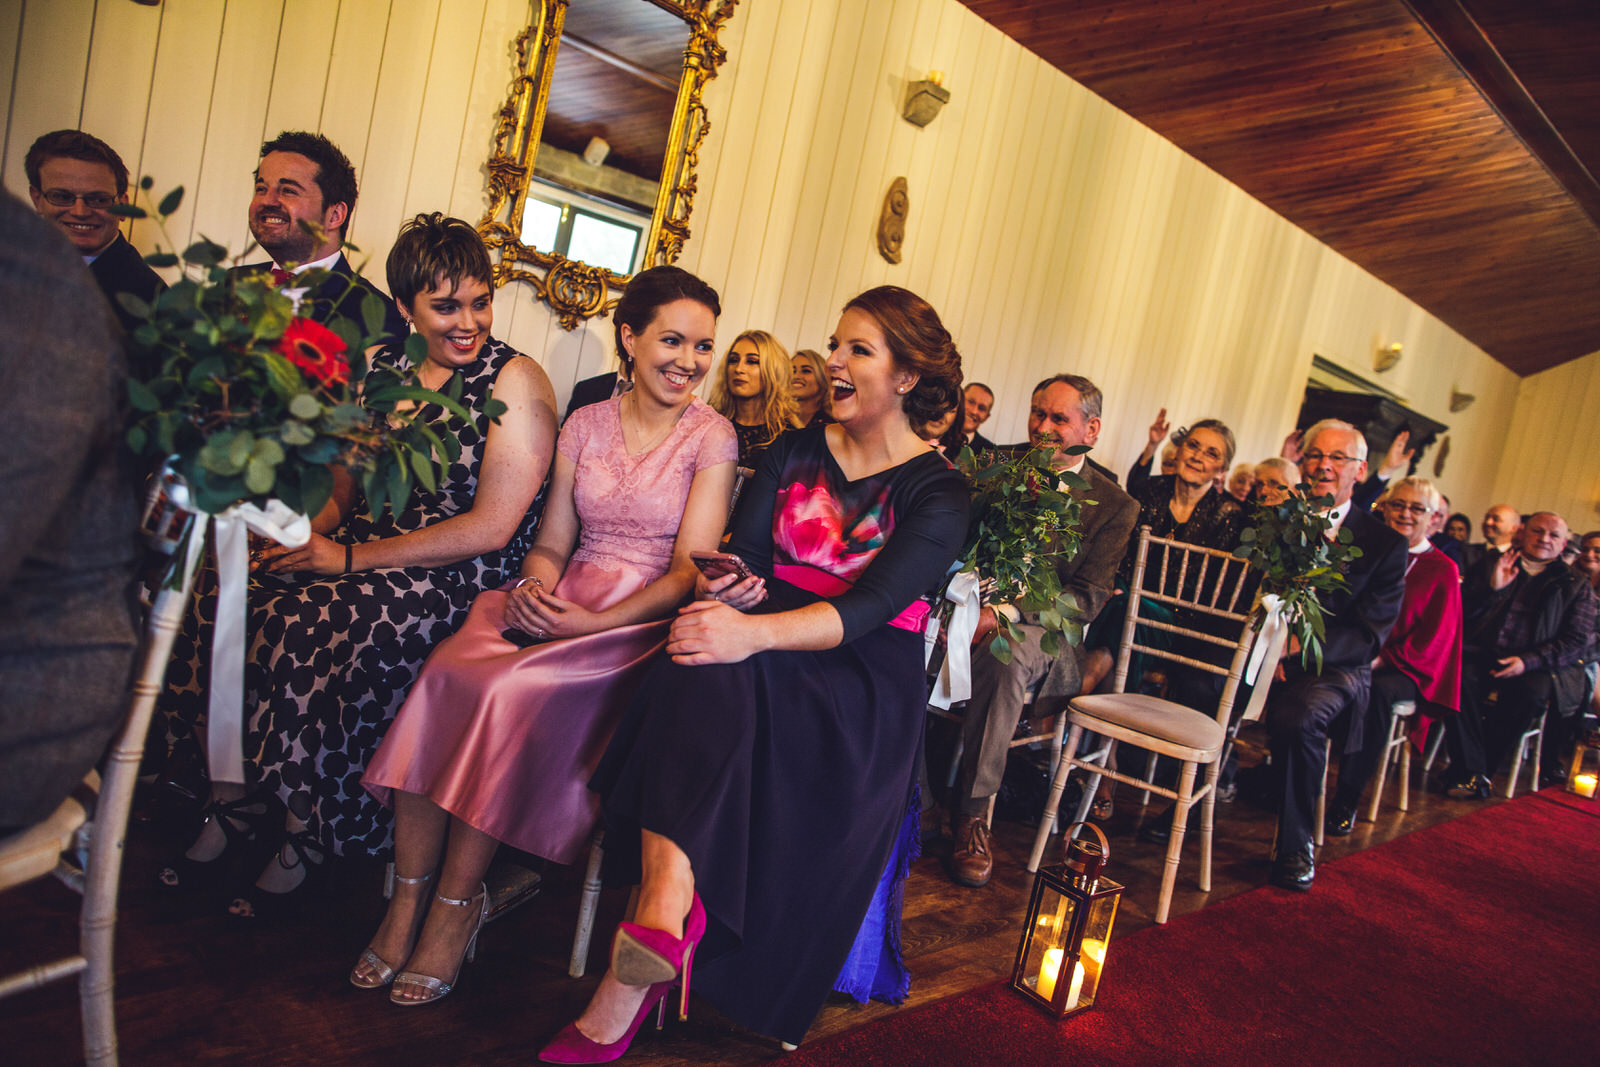 wicklow-wedding-photographer-roger-kenny-portrait-room-clonabreaney-house_054.jpg